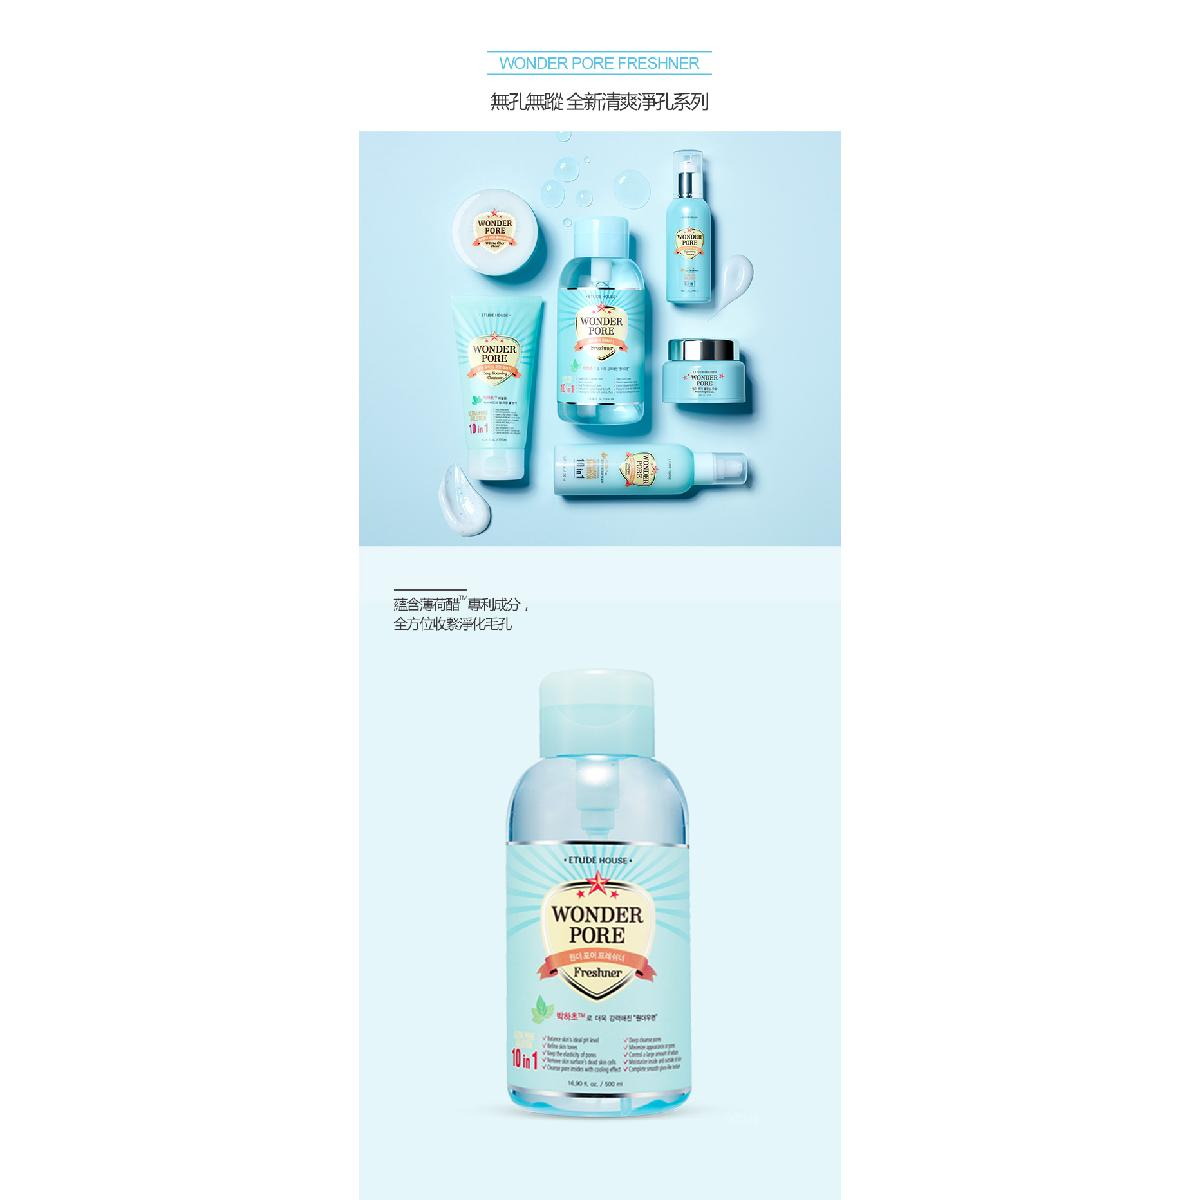 Etude House Wonder Pore Freshner 500ml Hktvmall 500 Ml